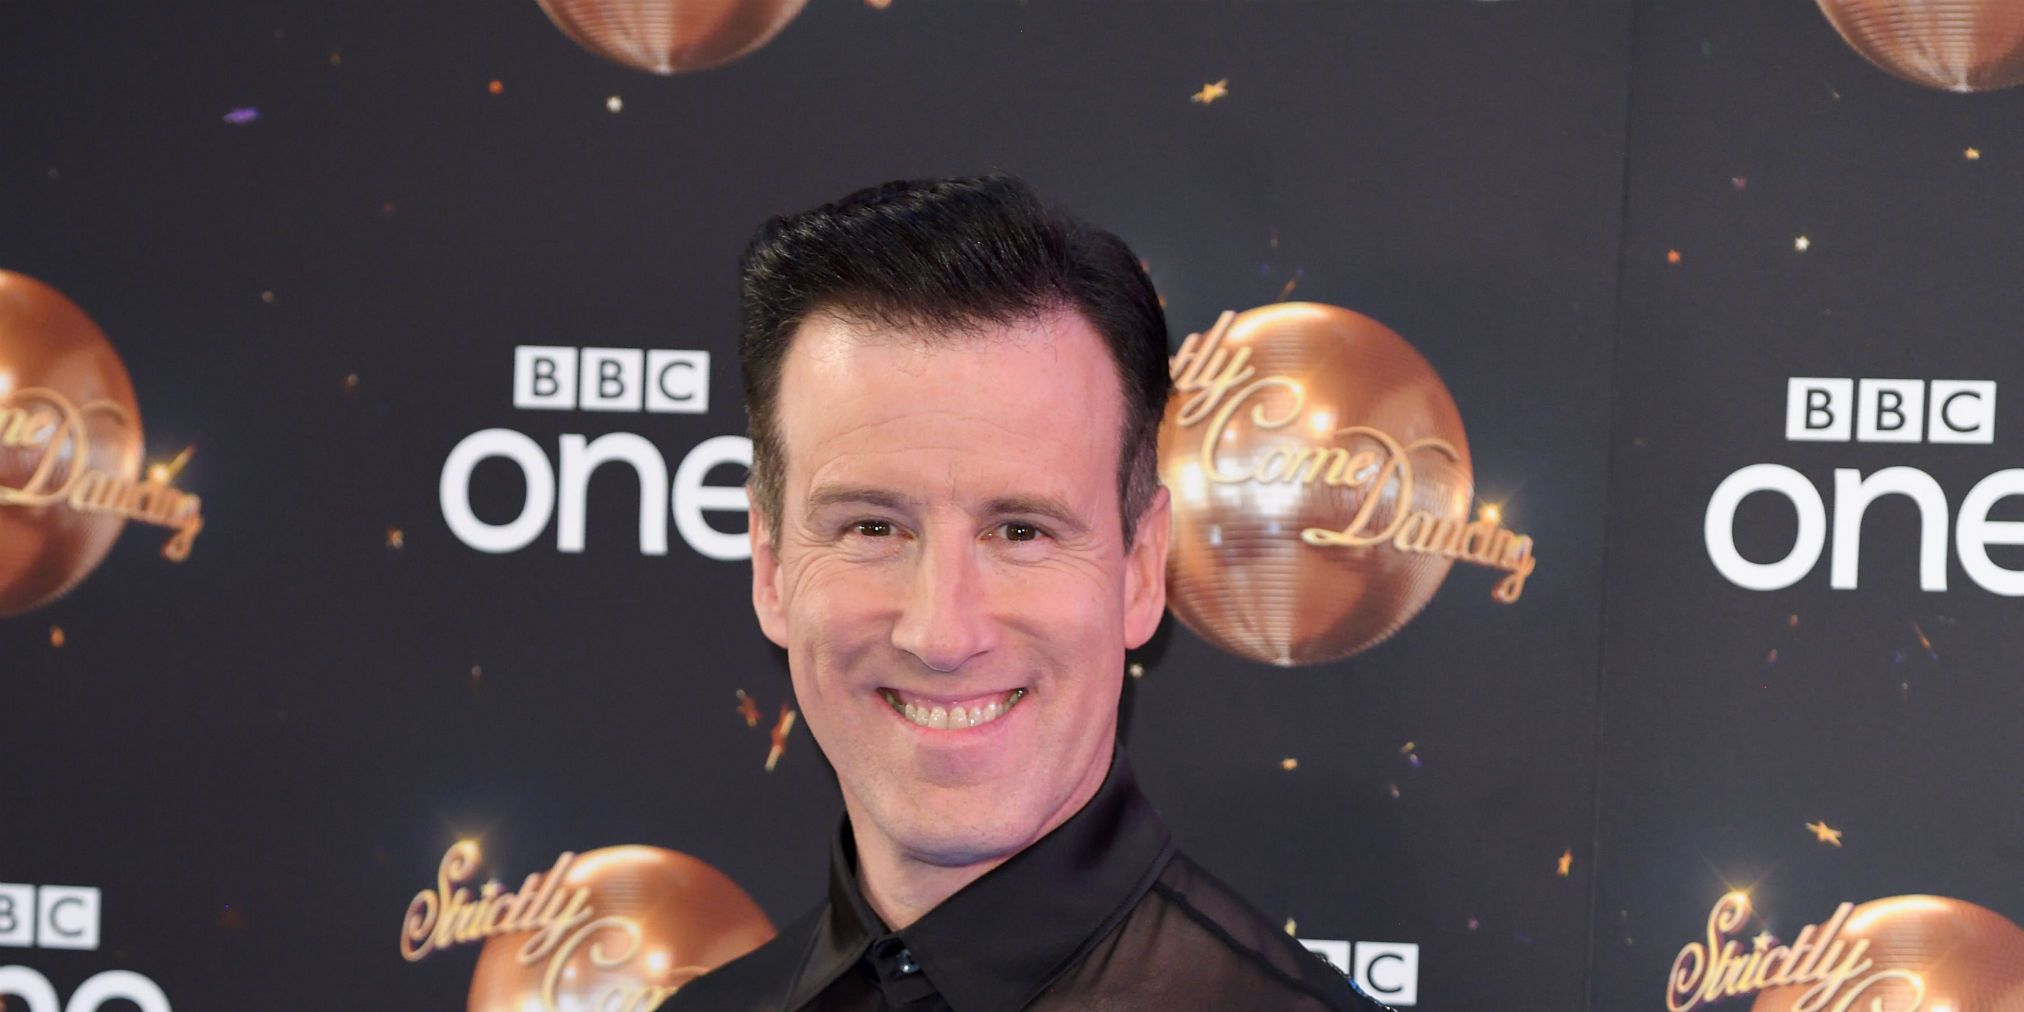 Anton Du Beke attends the red carpet launch for Strictly Come Dancing 2018